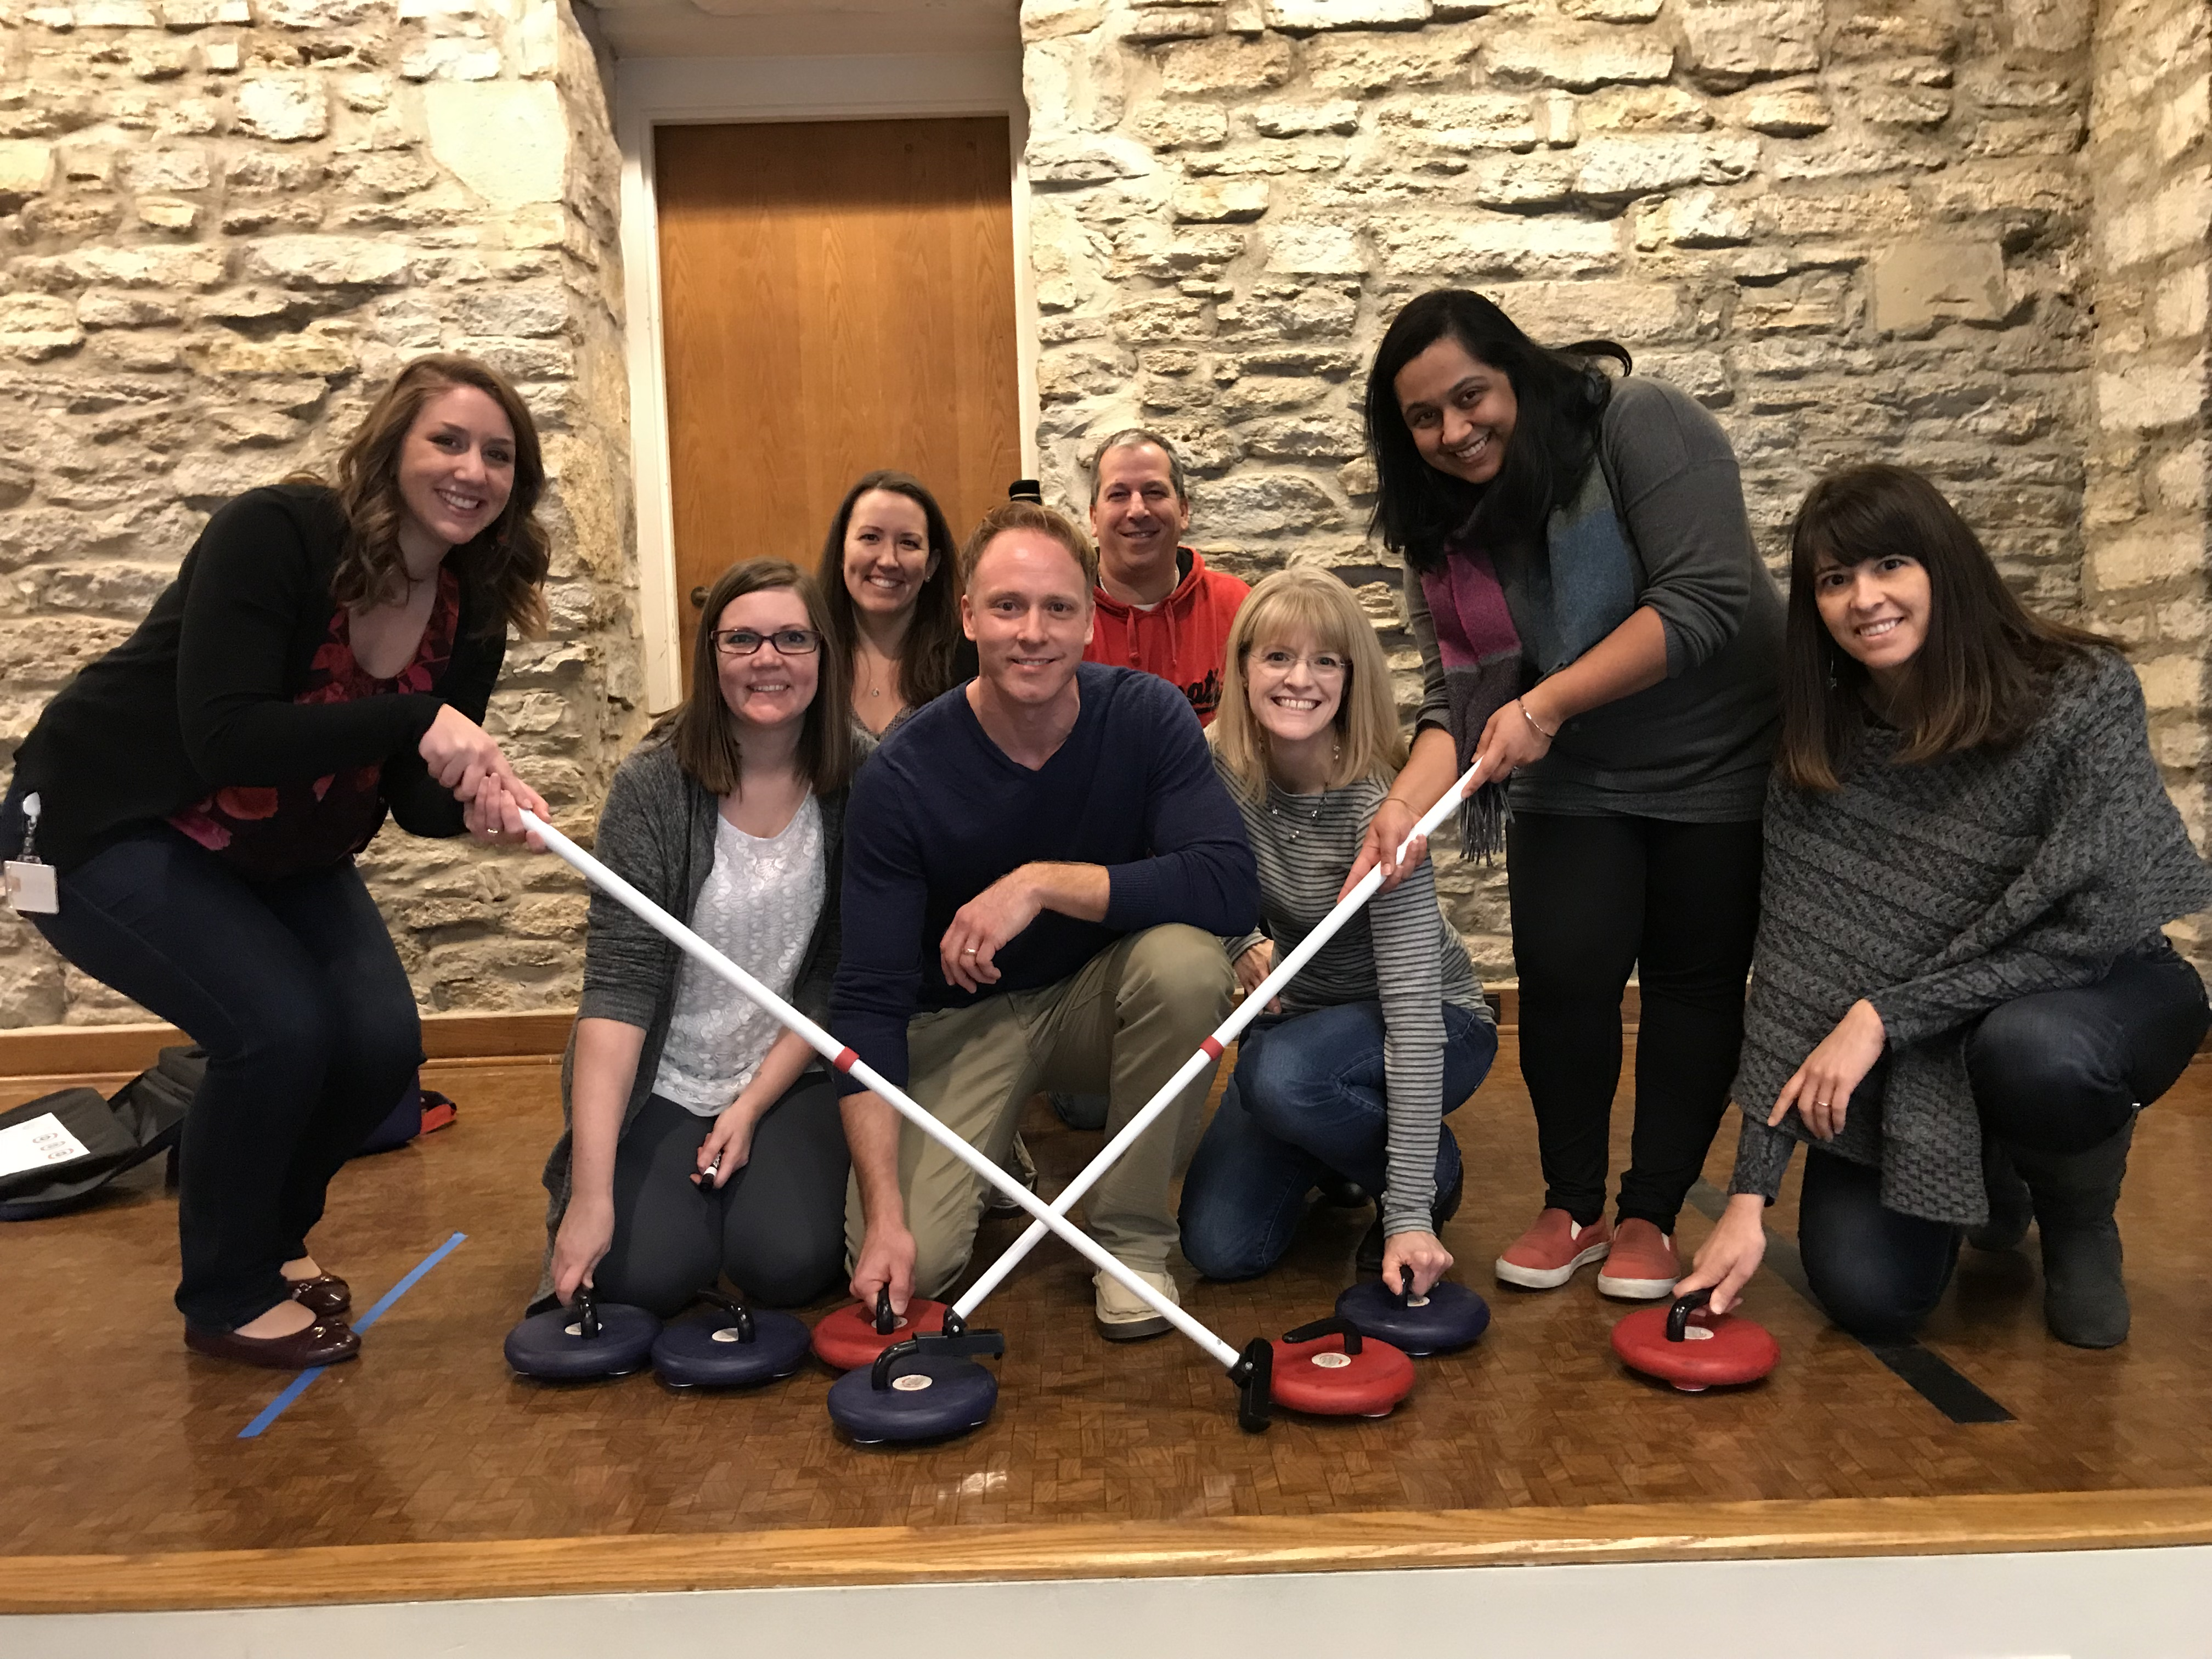 employees playing curling, office olympics, culture